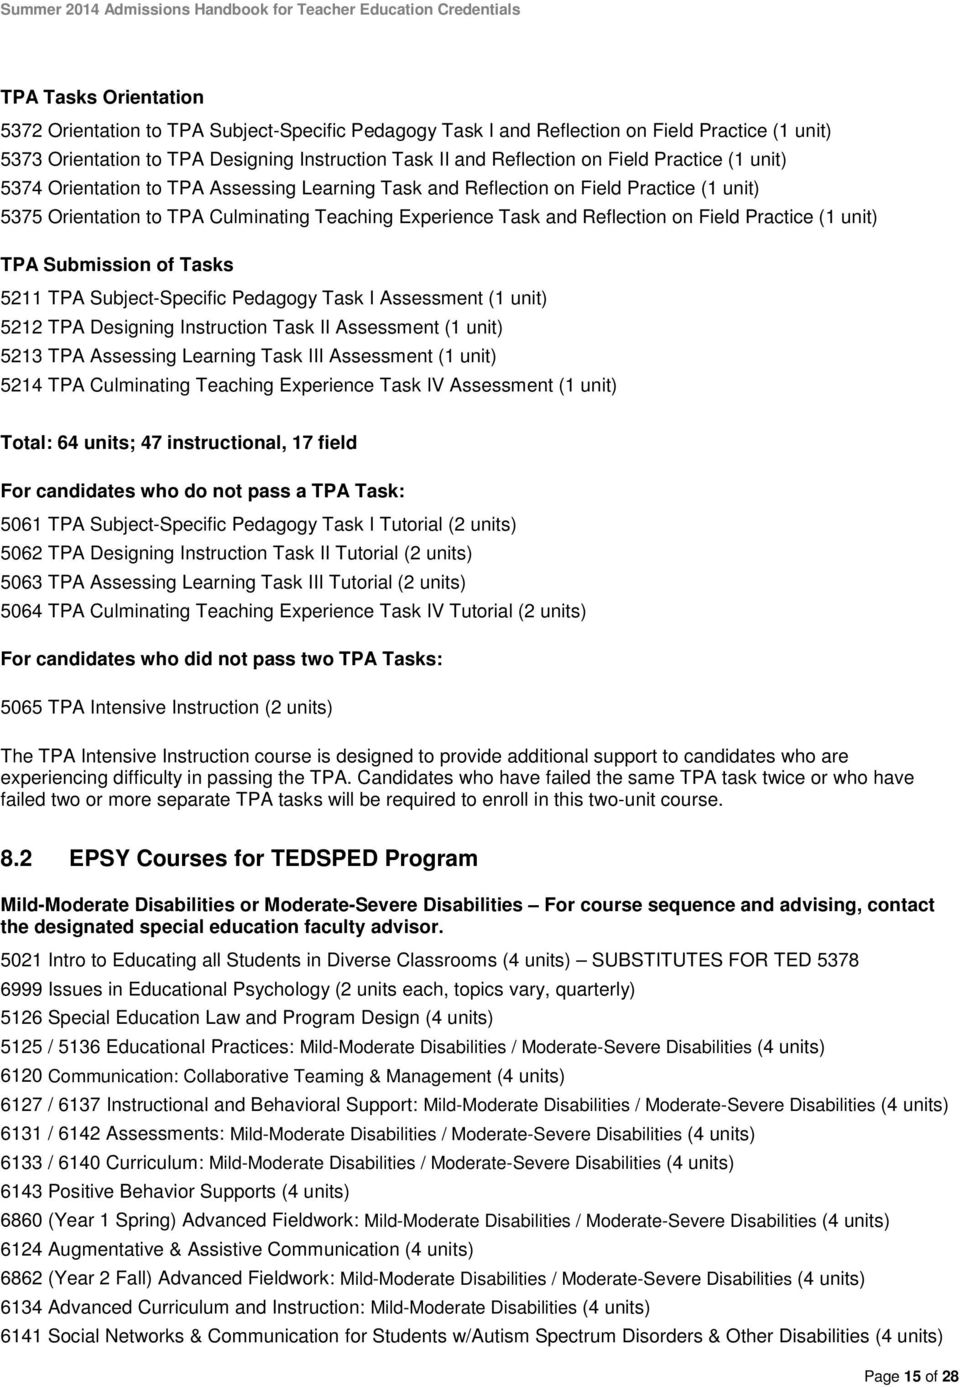 Teacher Credential Programs Admissions Handbook Summer Entry Pdf Free Download